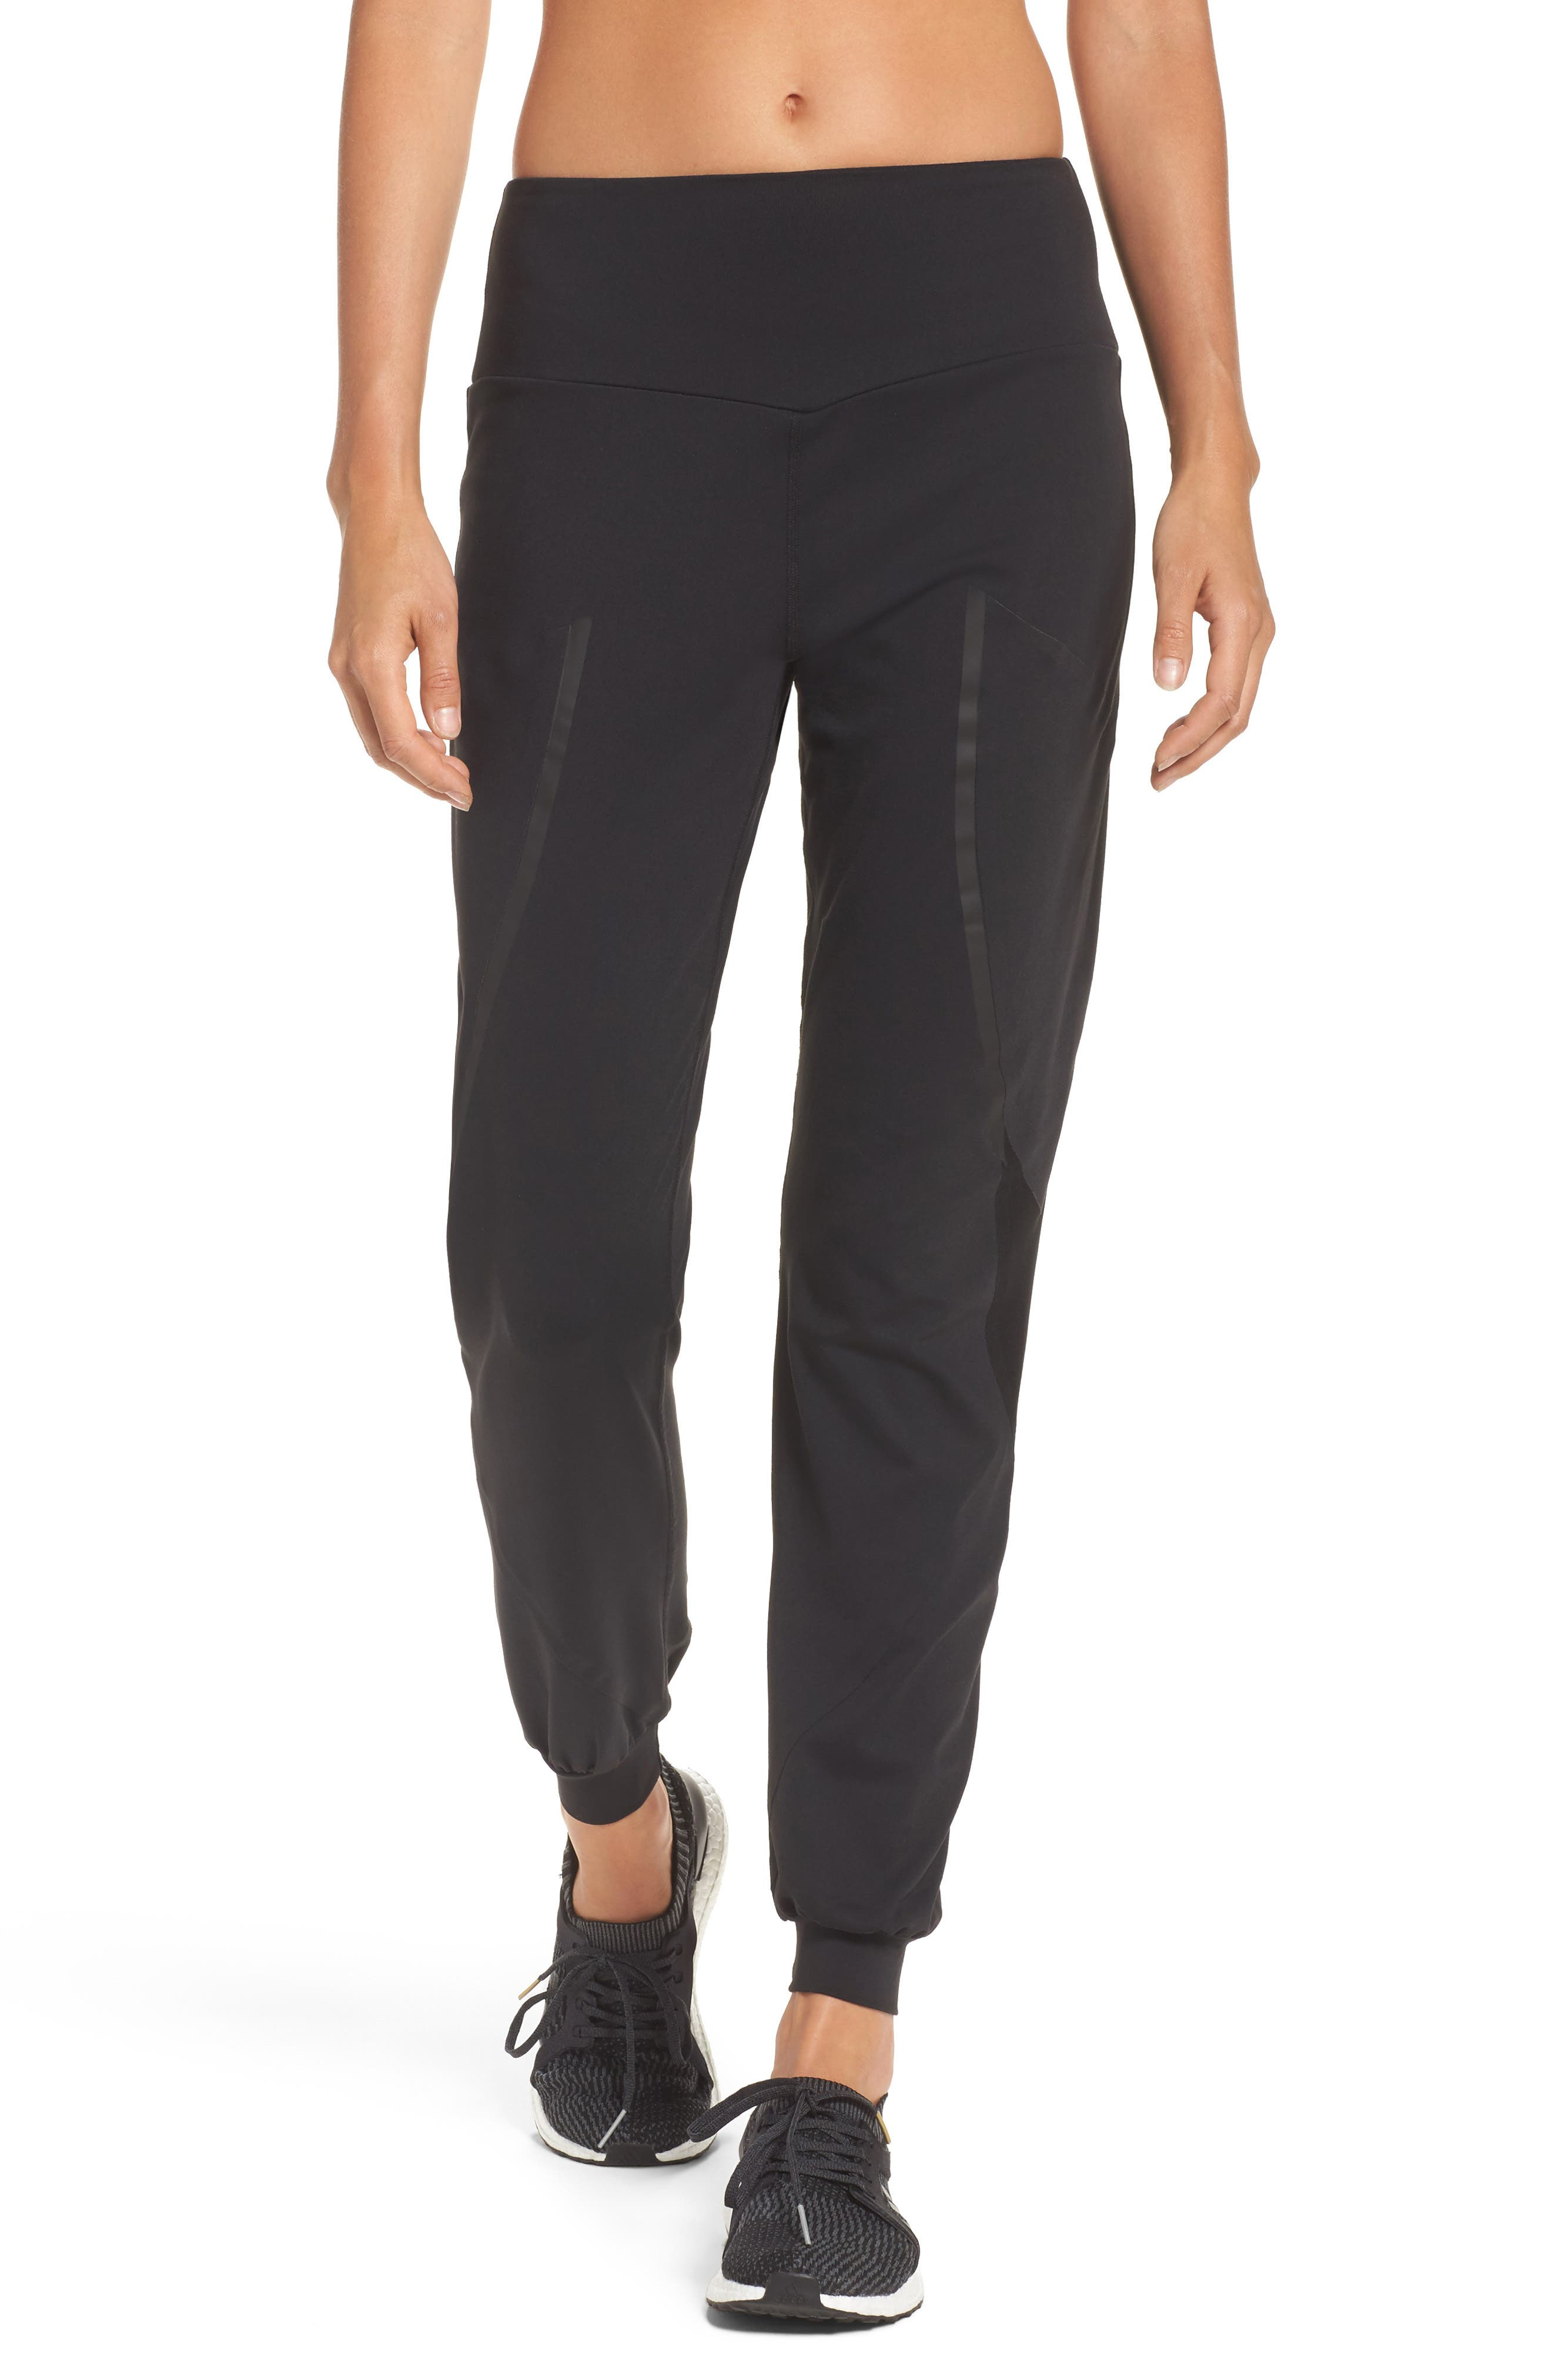 BoomBoom Athletica Track Pants,                             Main thumbnail 1, color,                             BLACK